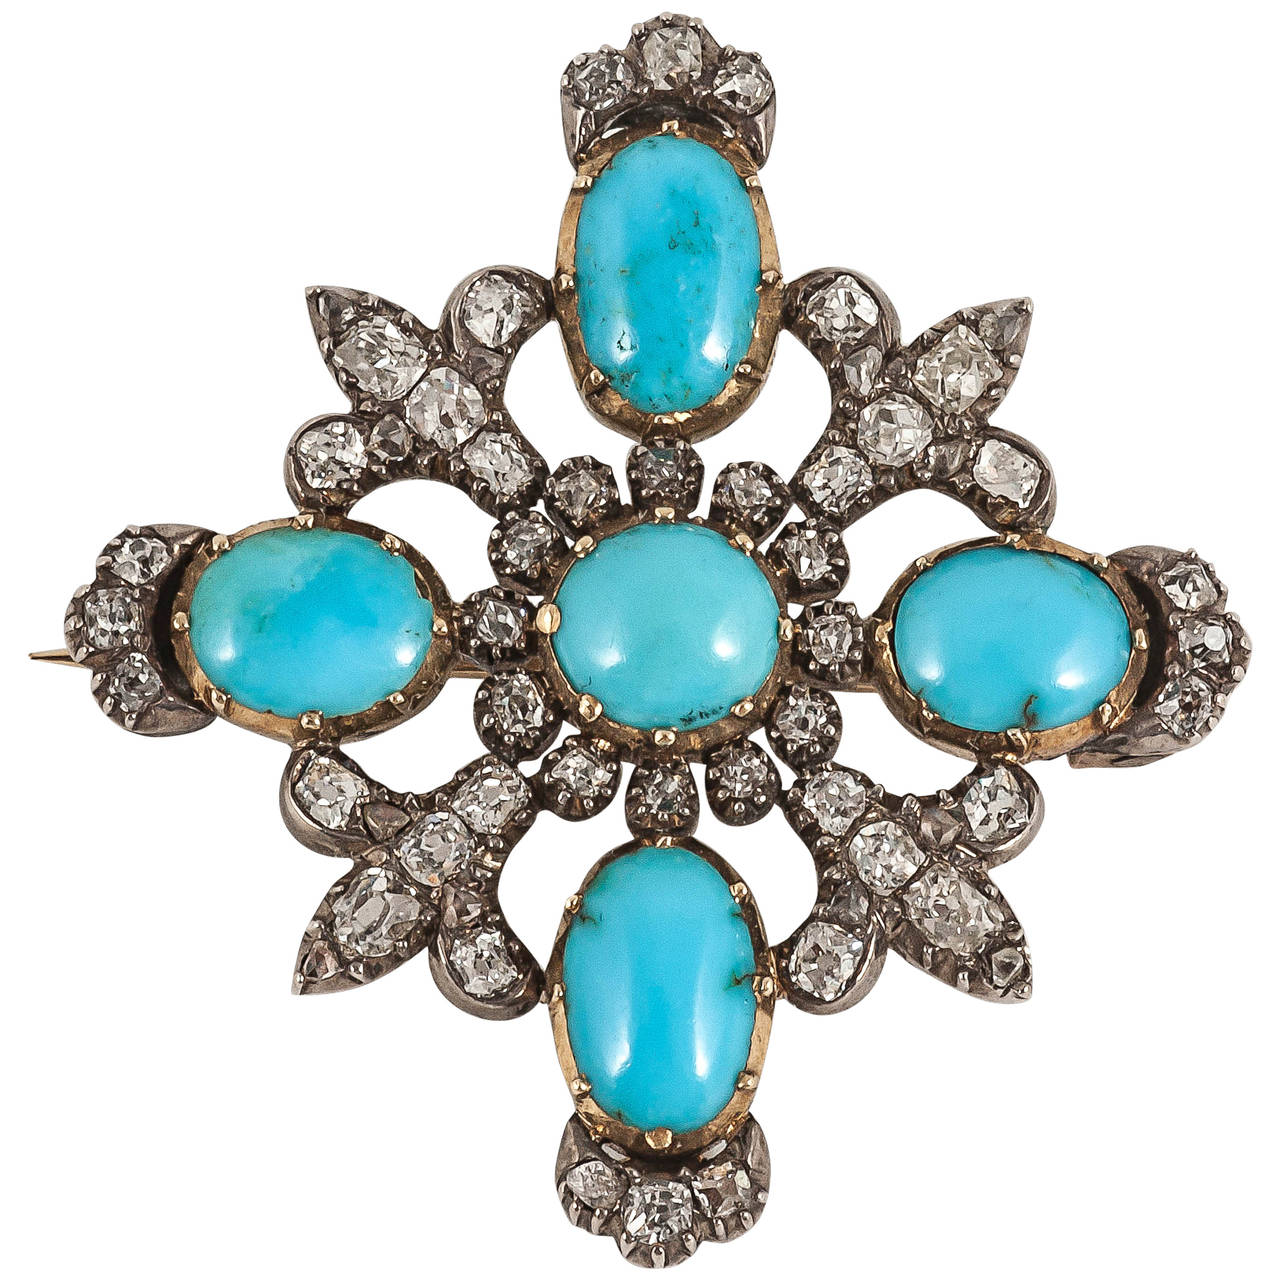 19th century turquoise and diamond brooch 1